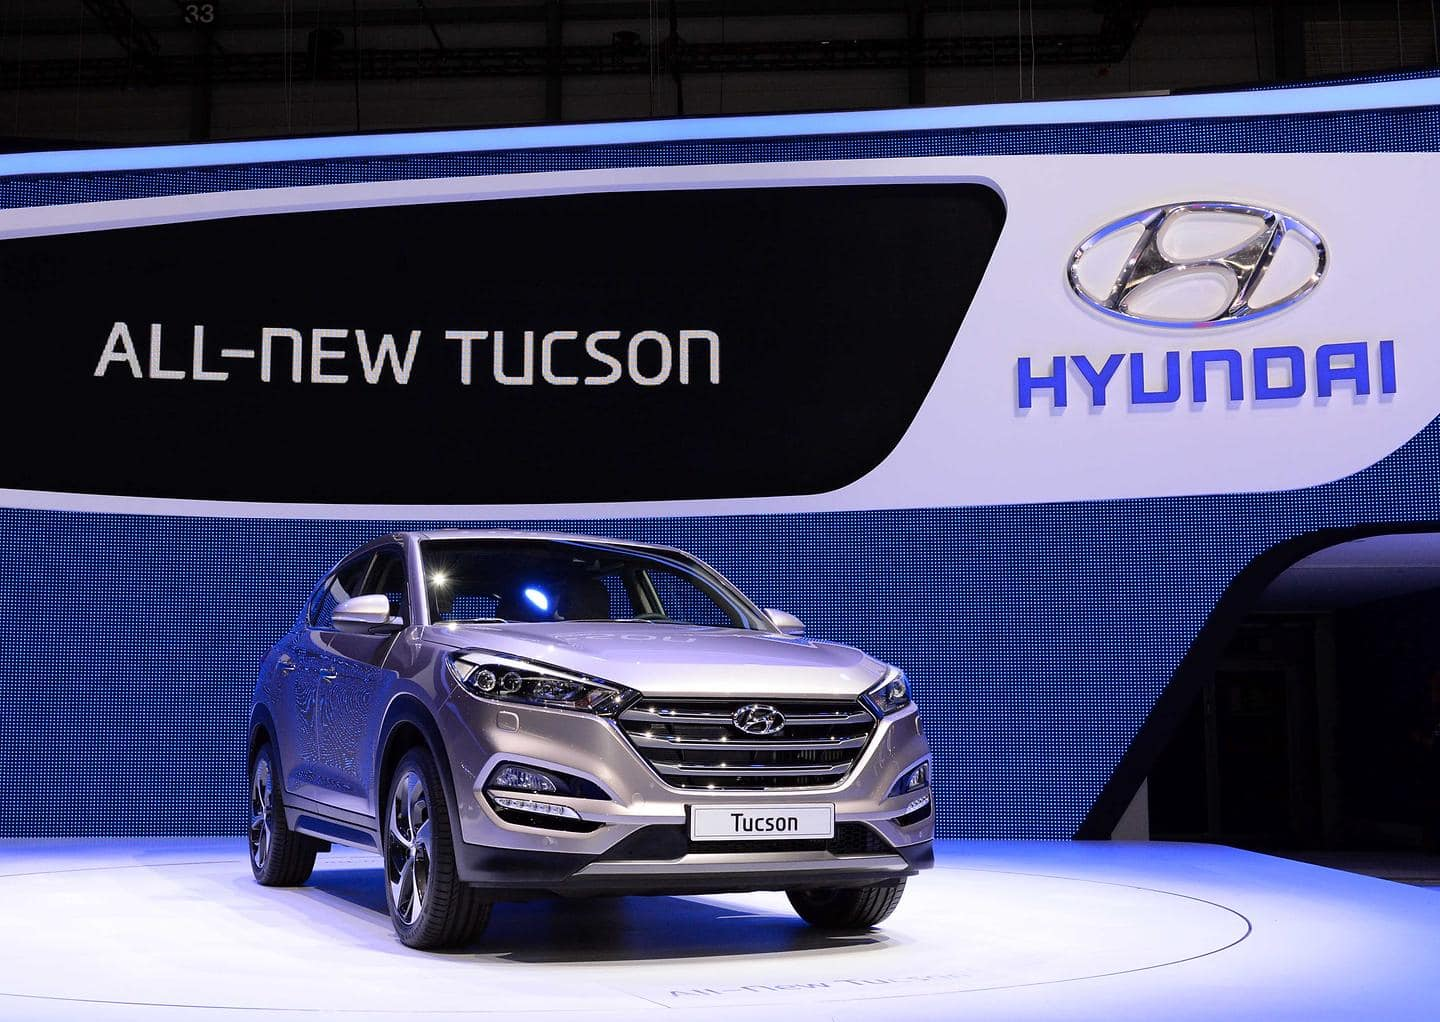 All-New Tucson at 2015 Geneva Motor Show